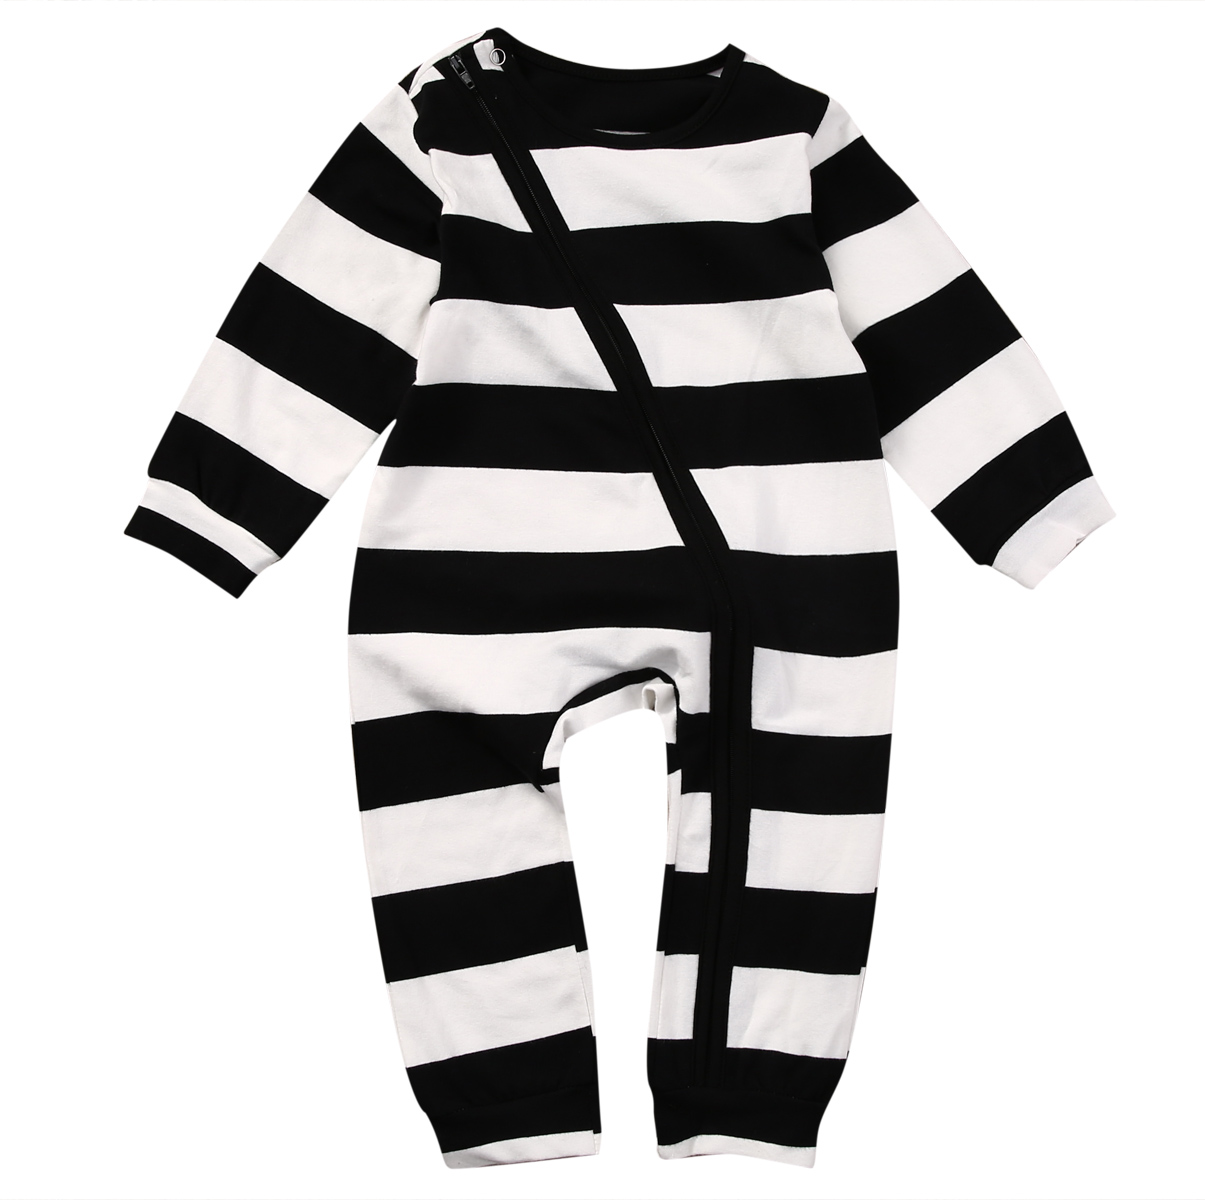 Pudcoco Baby Boys Clothes Zip Up Sleeper Long Sleeve Striped Infant Newborn Sleep and Play Suit khaldoun agha al network coding